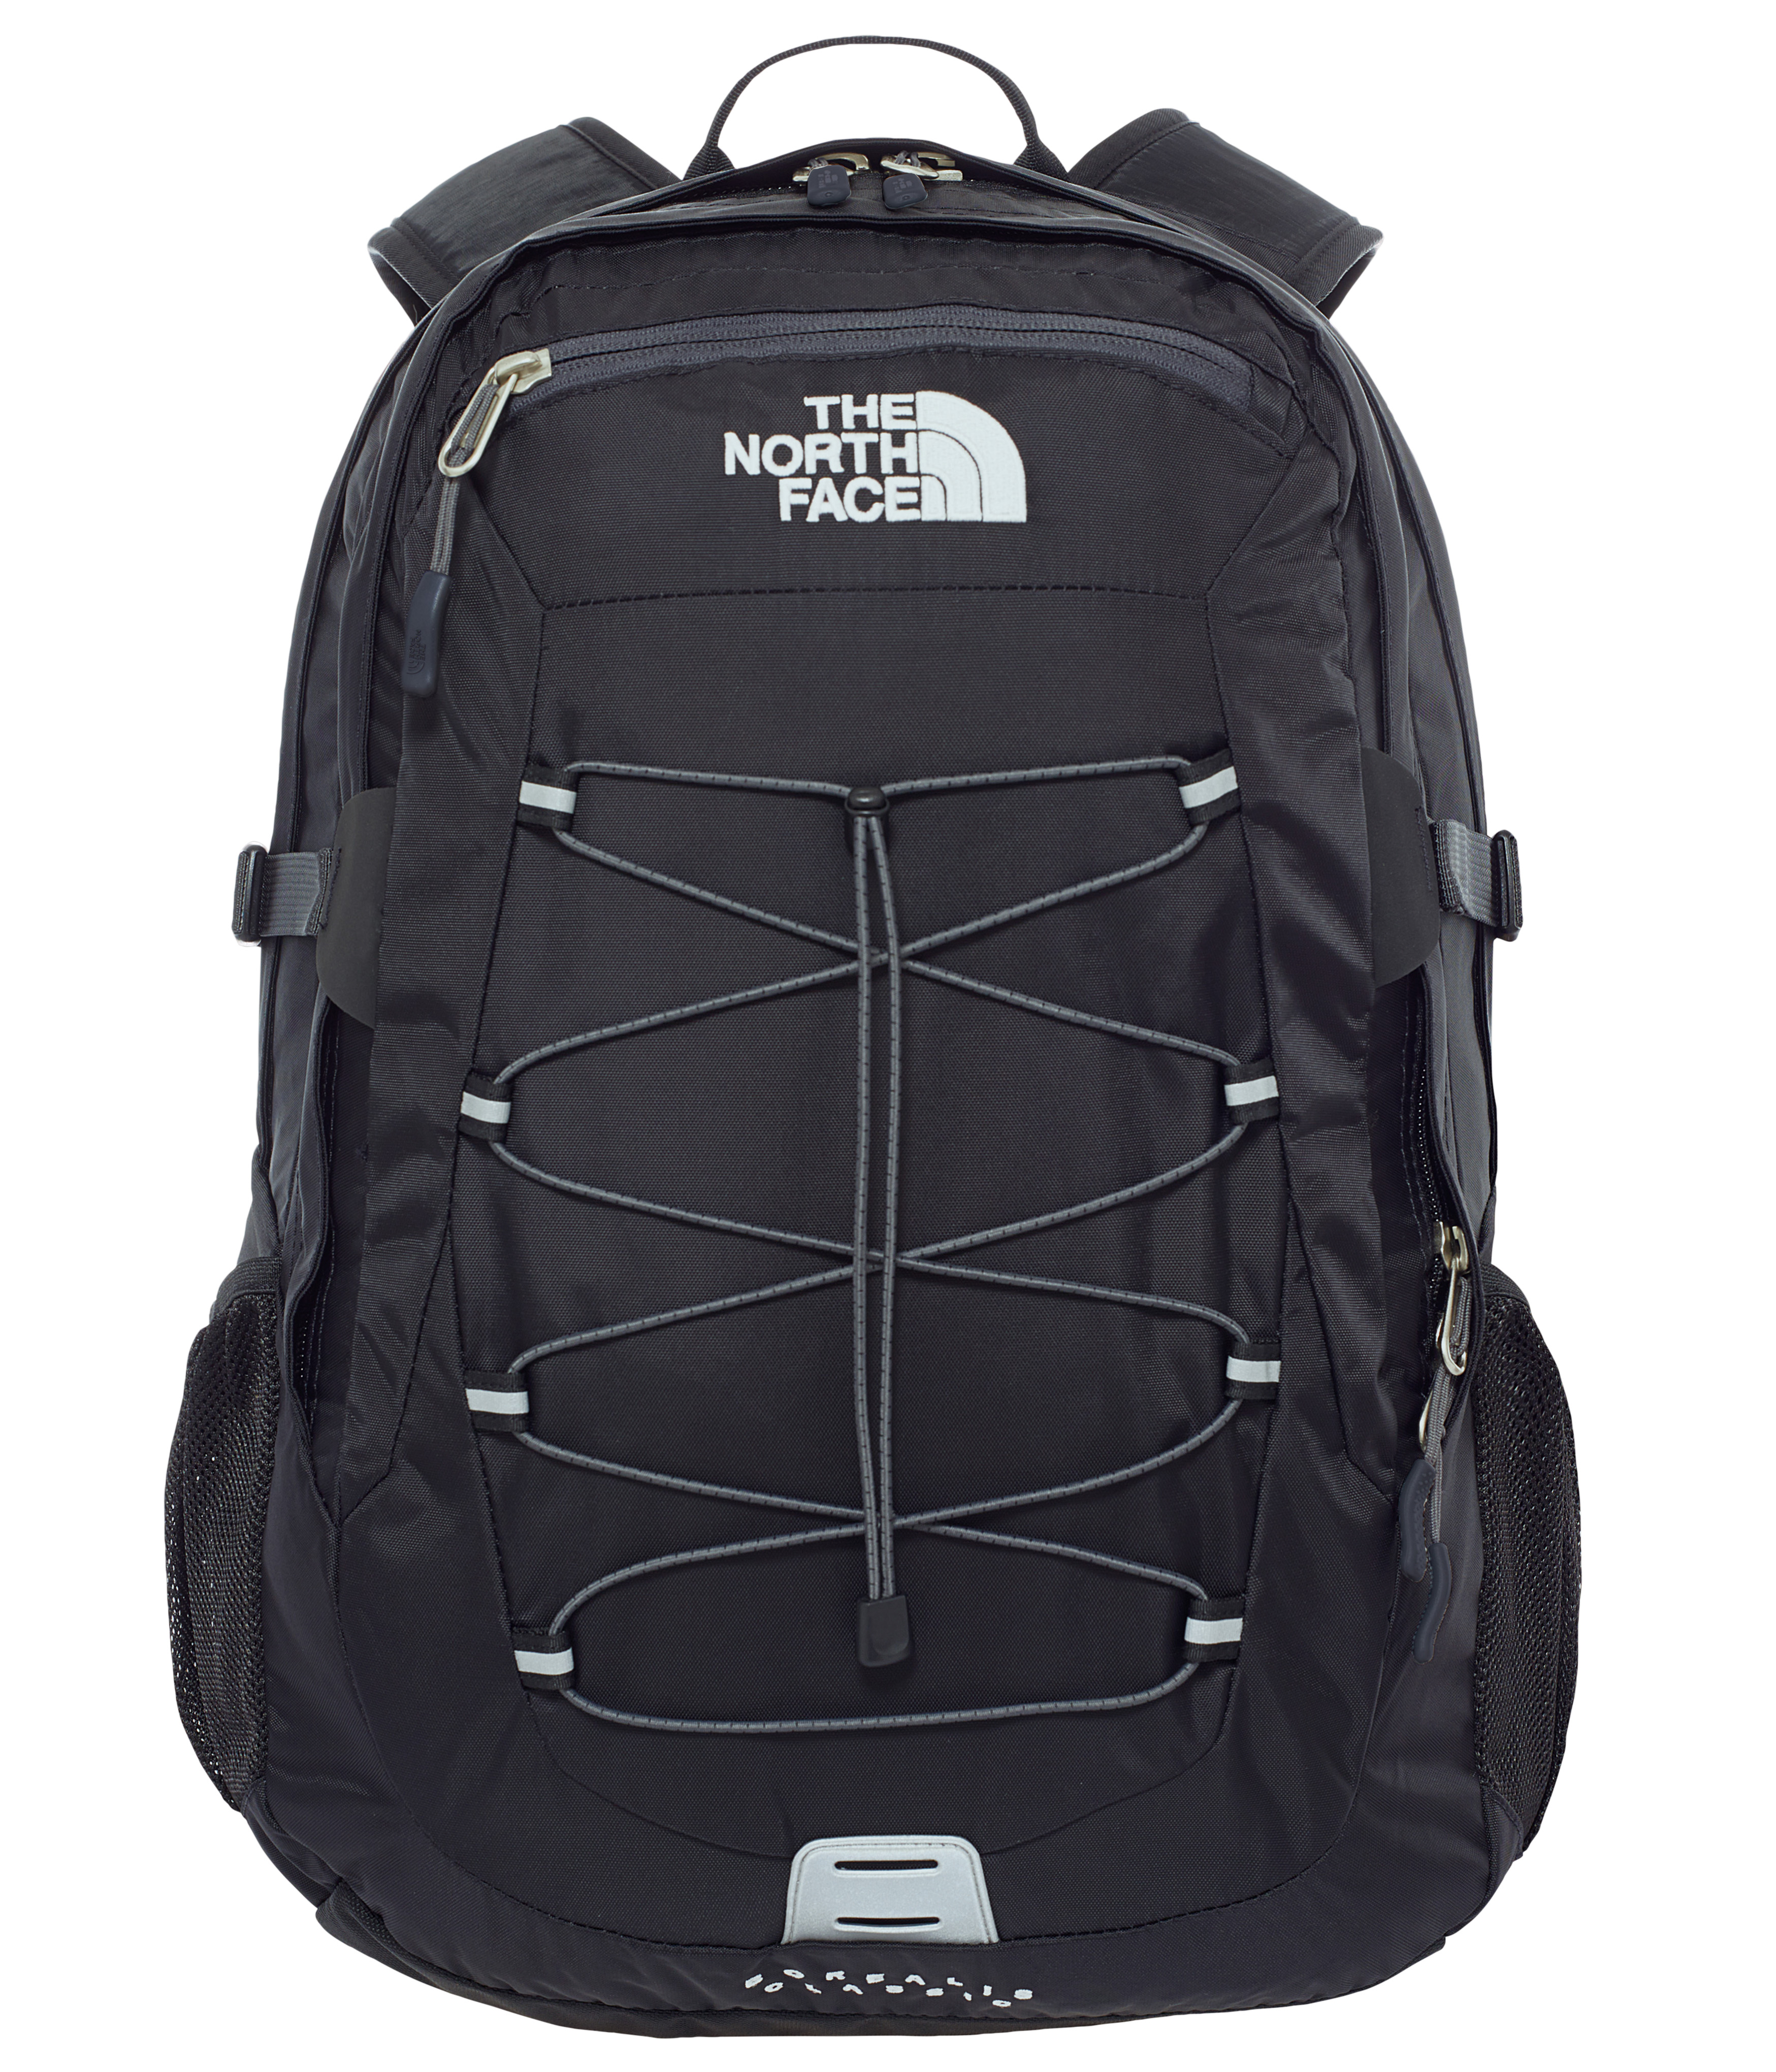 The North Face Borealis Classic 29L Backpack